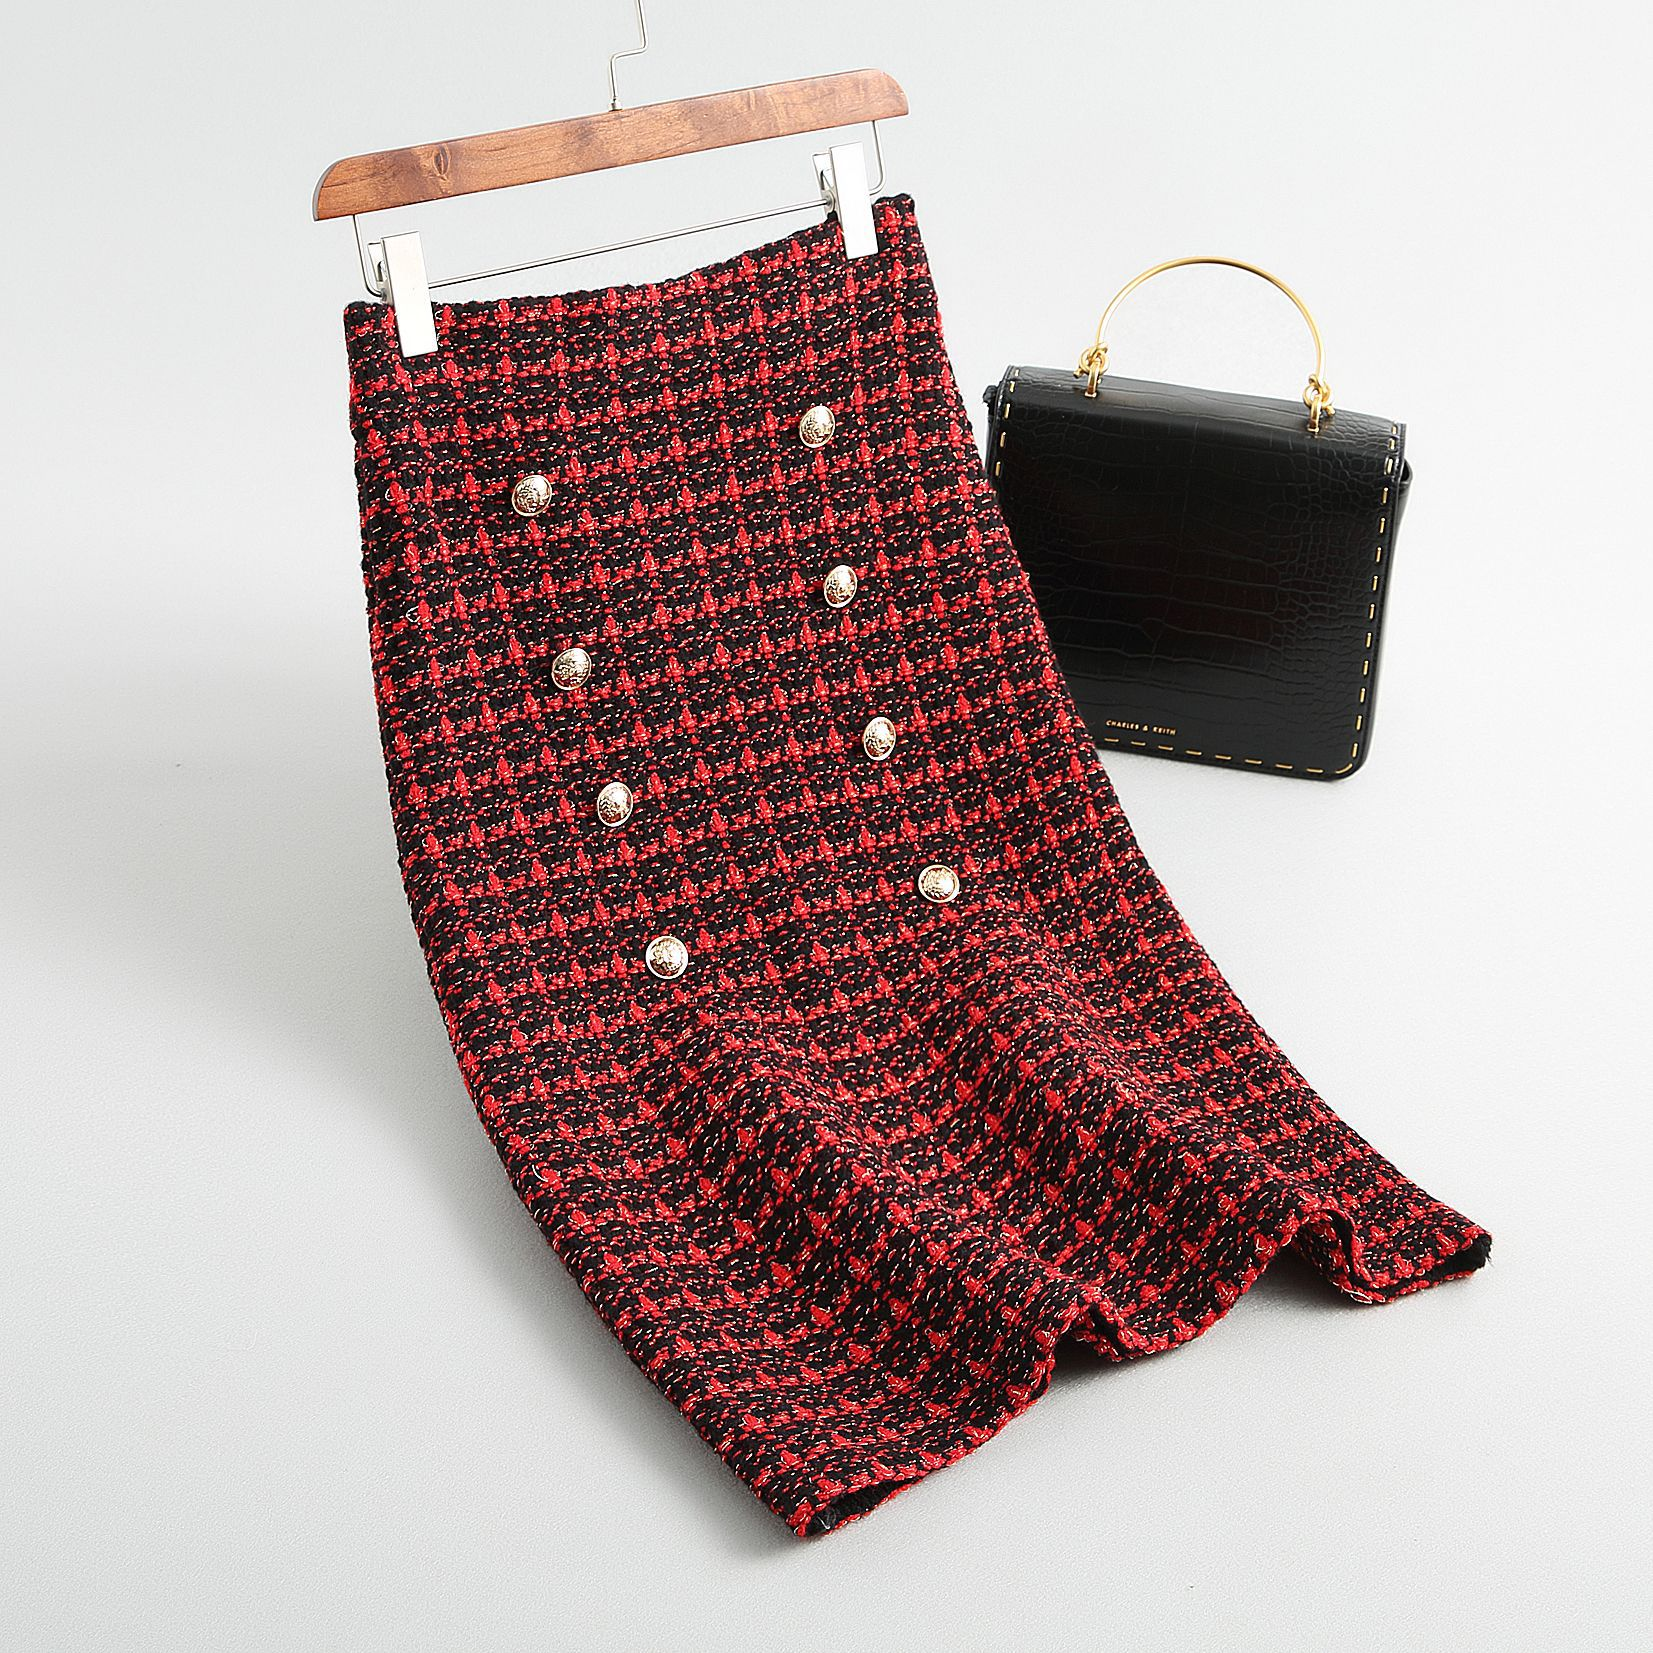 19 Spring autumn New tweed Women's skirt elegant Office Double Breasted plaid knitted Vintage Package Hip midi skirt Female 7